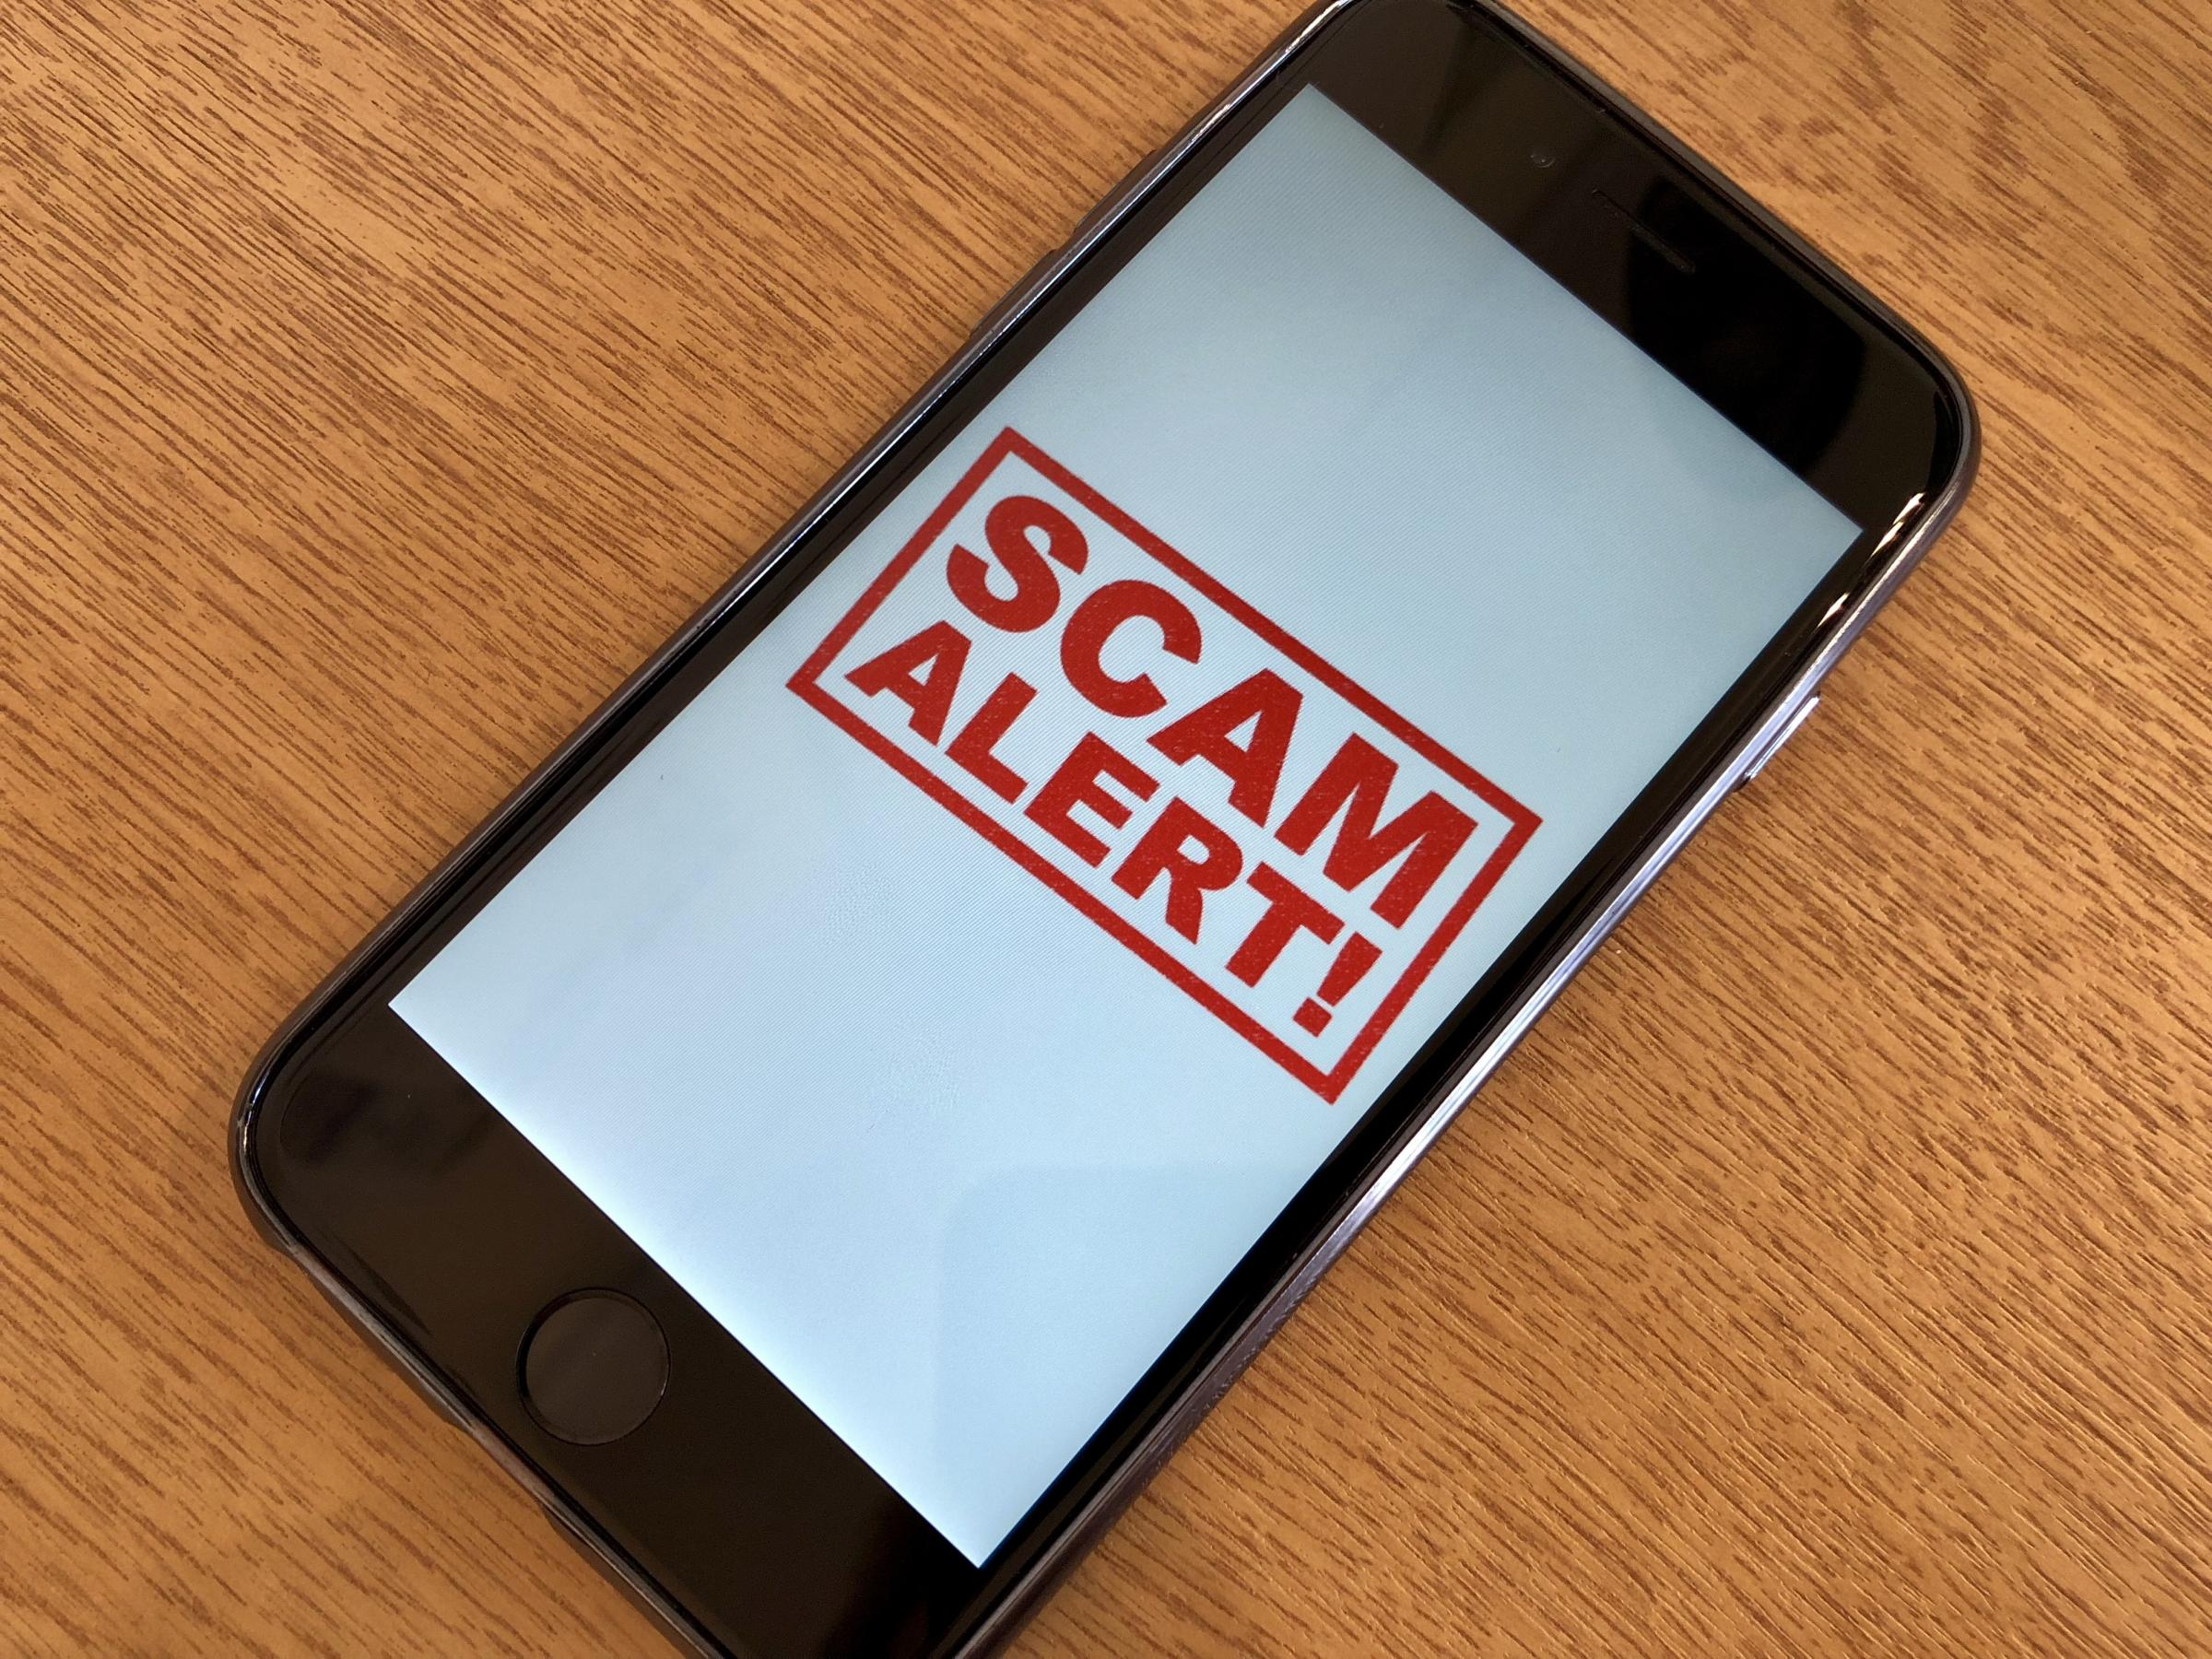 Many scam attempts are sent to people's mobile phones